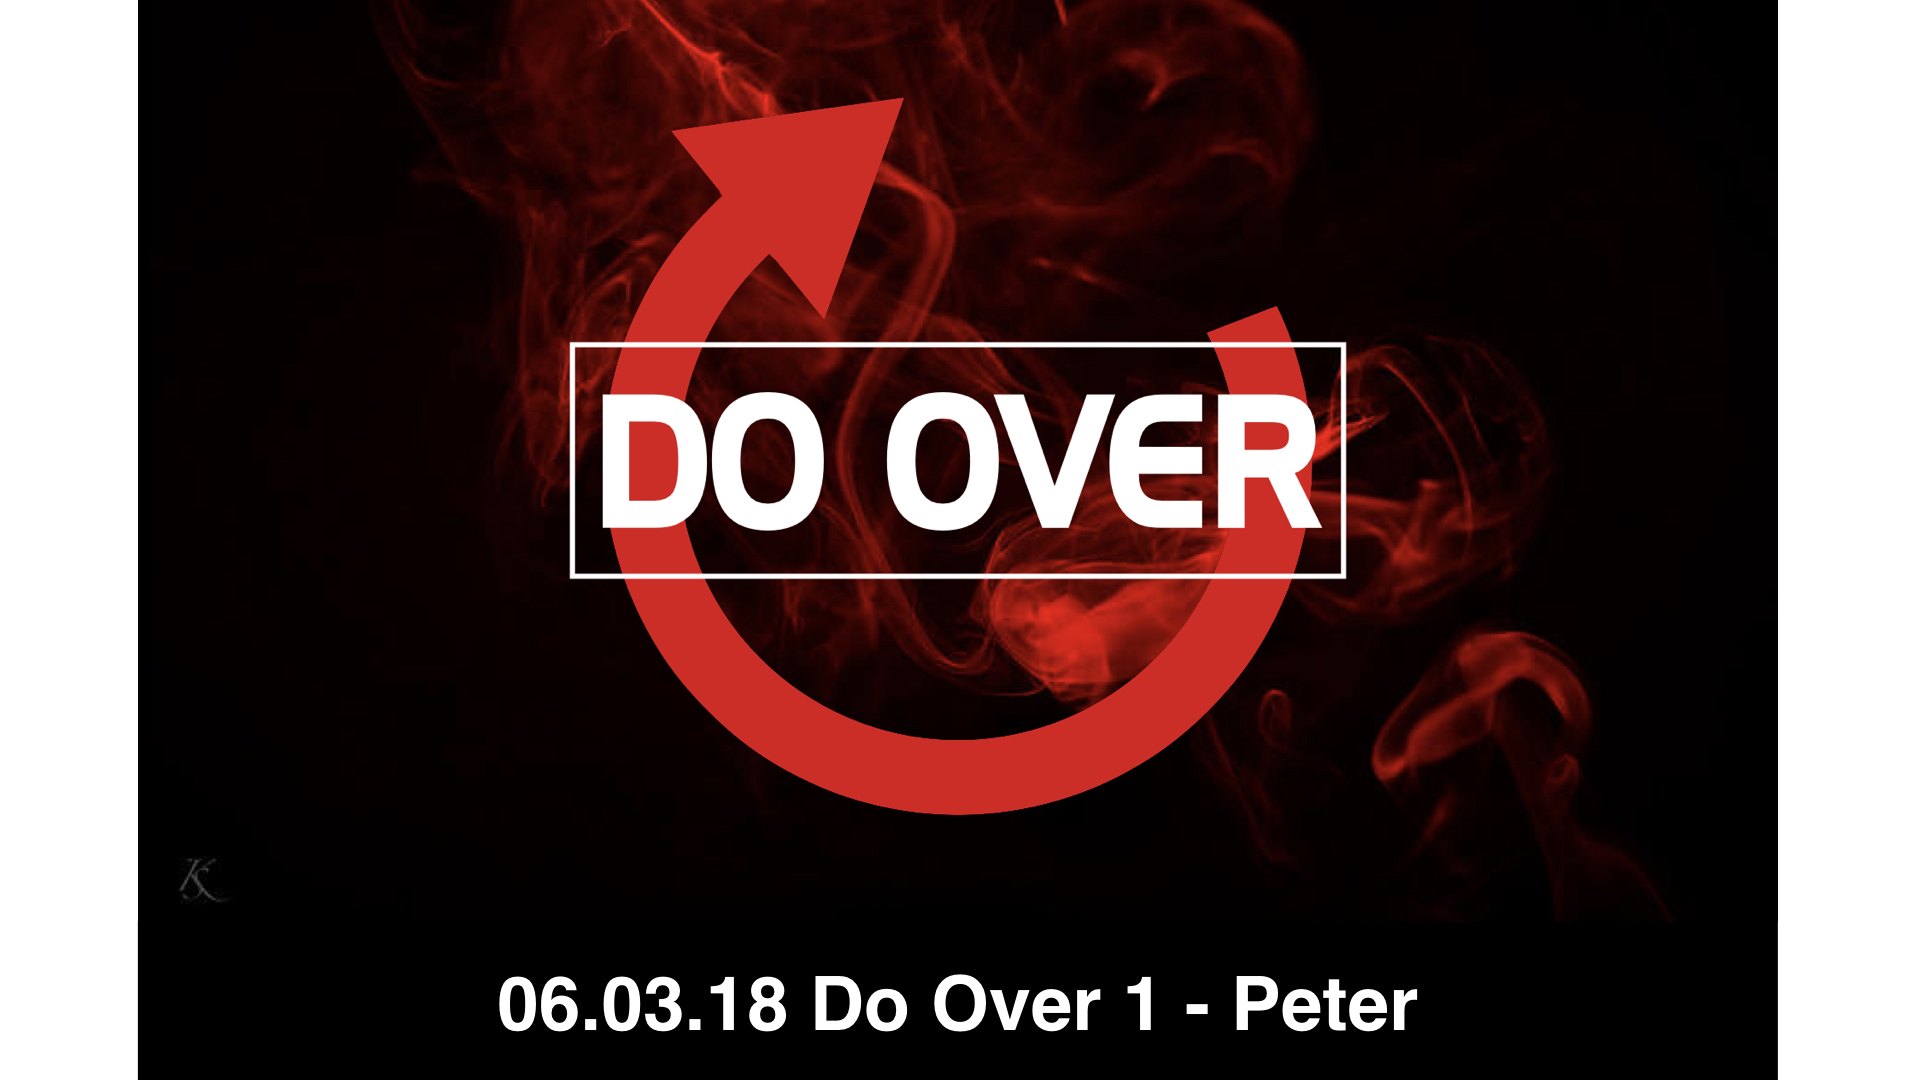 06.03.18 Do Over 1 - Peter